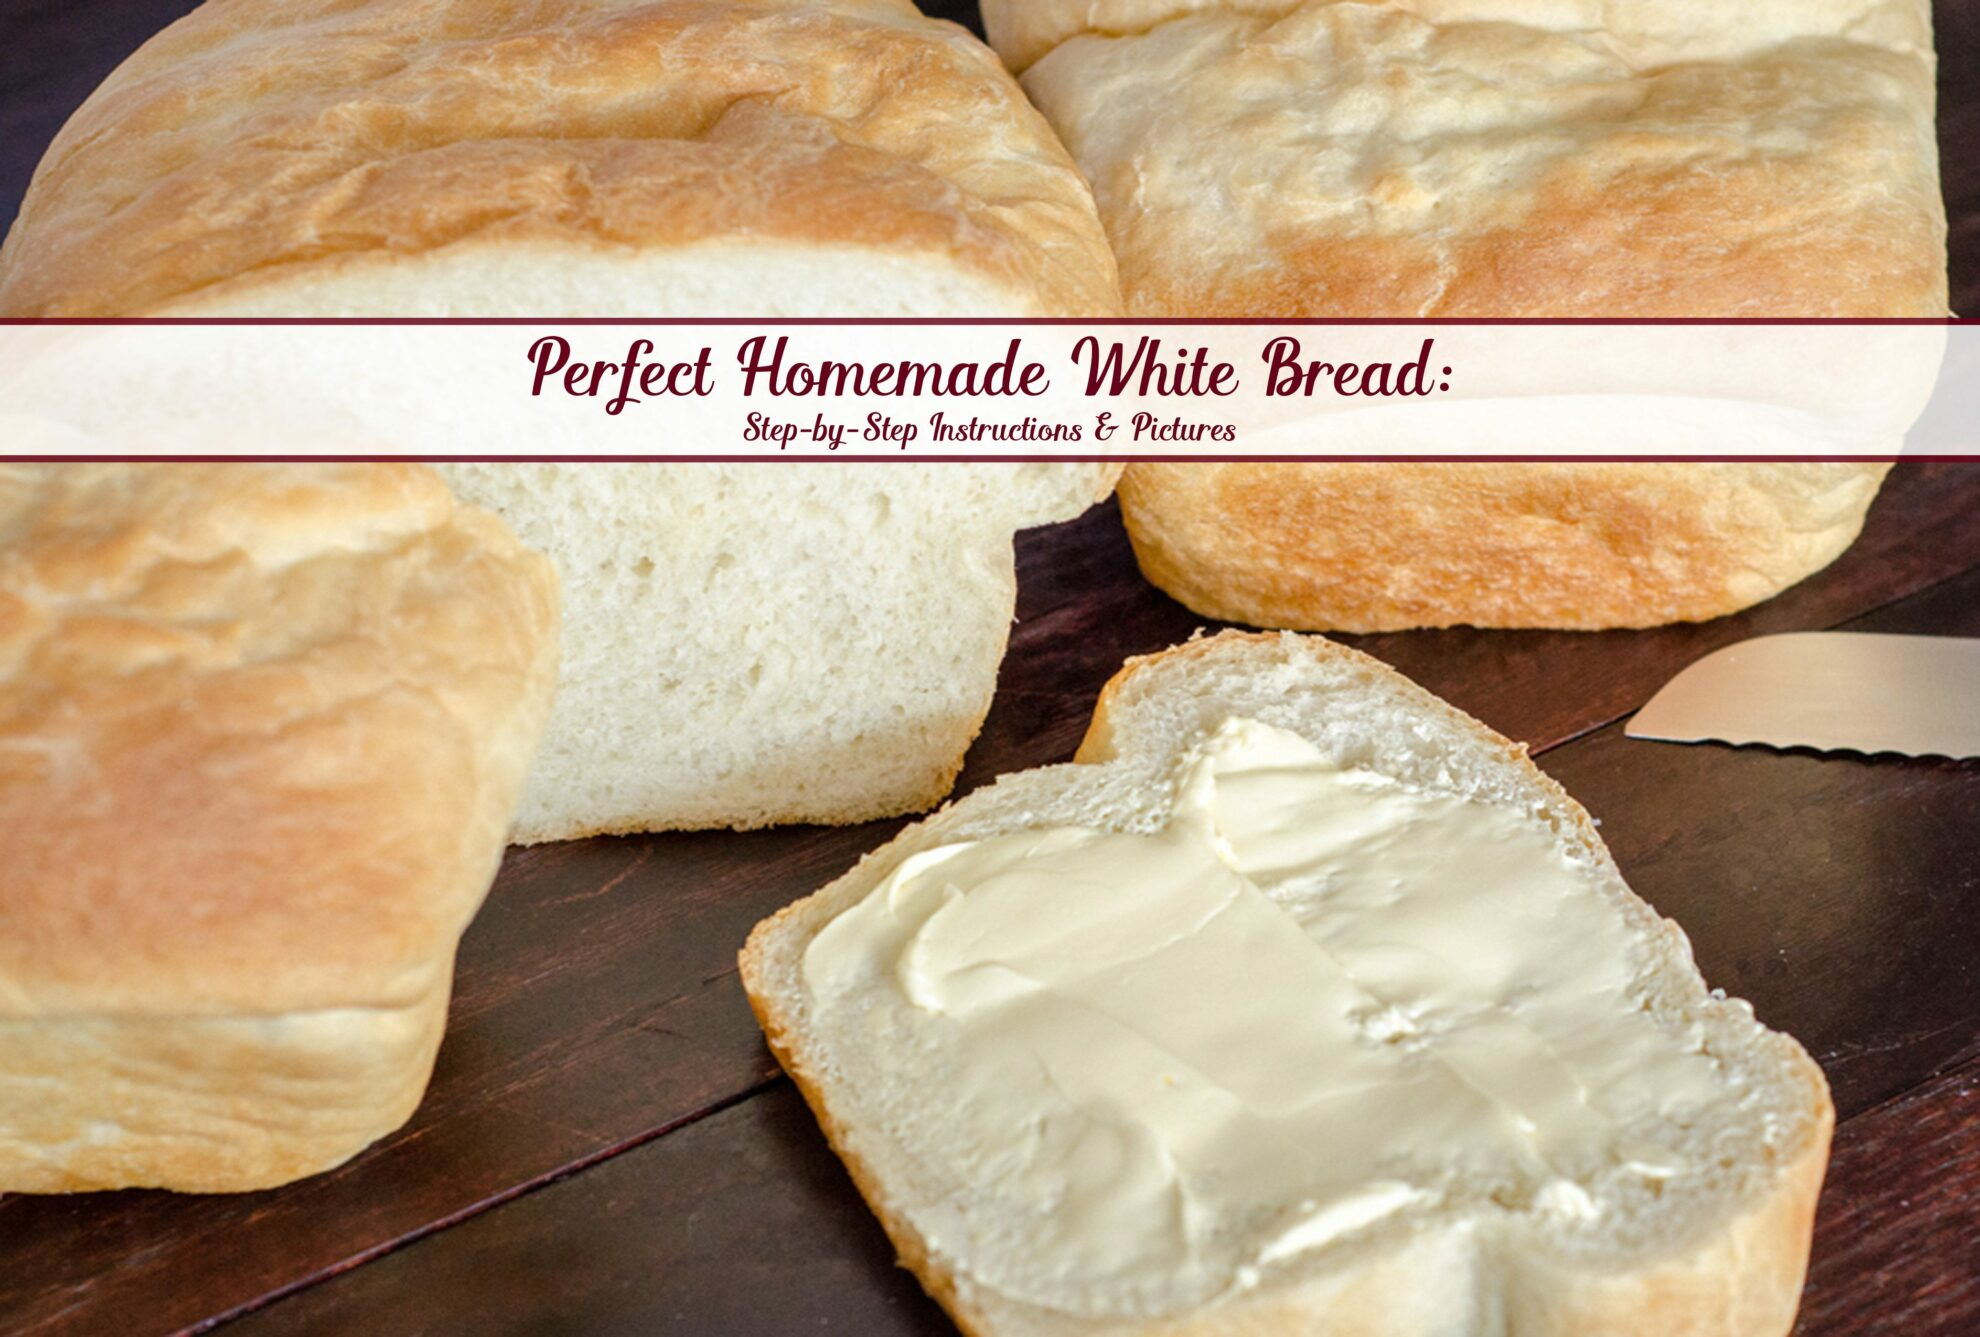 Perfect Traditional Homemade White Bread (and it works for sandwiches). Save money by making your own bread...and it tastes better! Step-by-step pictures and descriptions.